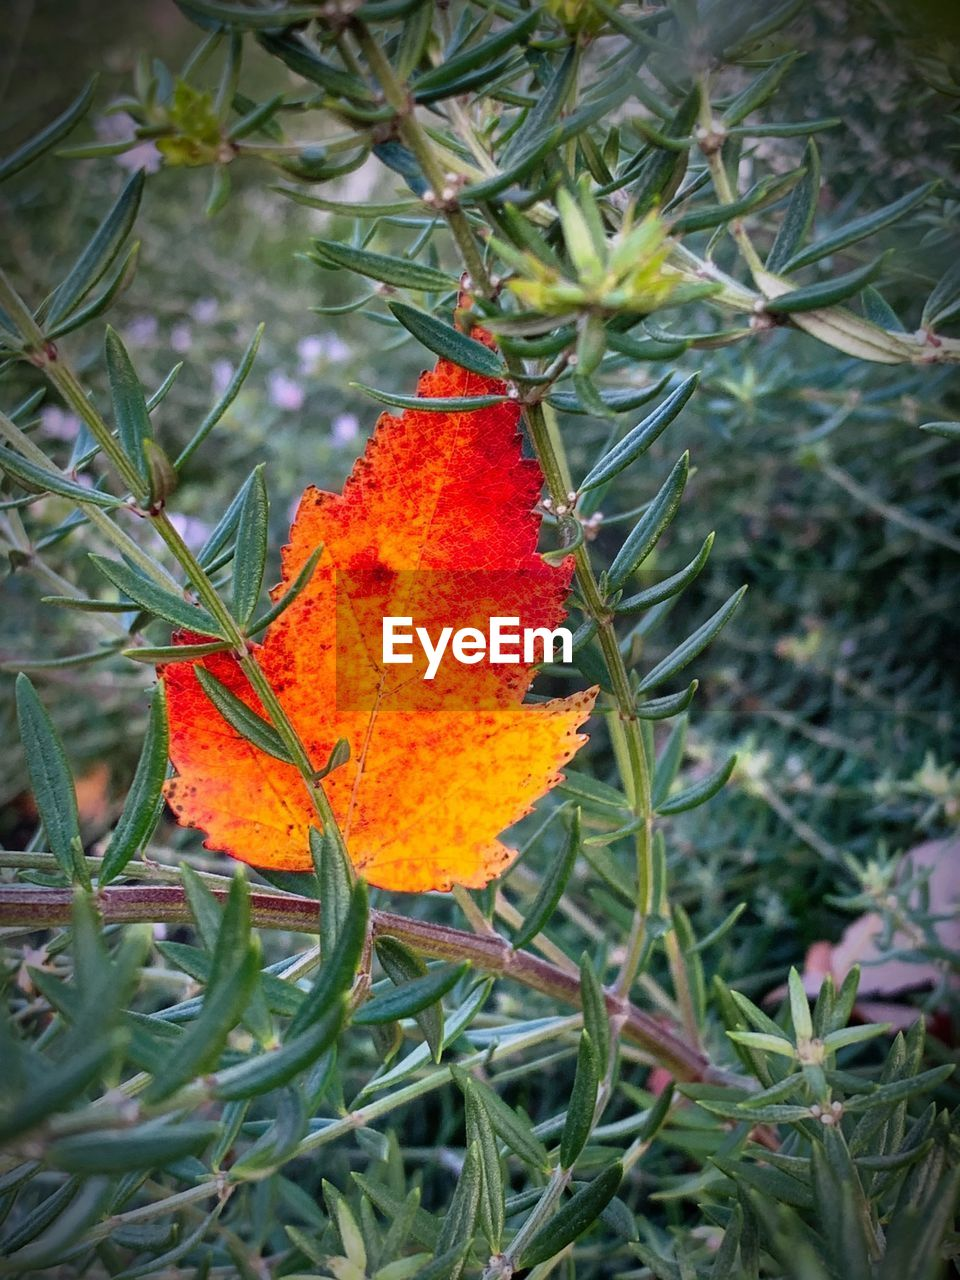 orange color, plant, growth, close-up, plant part, beauty in nature, nature, leaf, no people, day, green color, focus on foreground, outdoors, freshness, land, vulnerability, autumn, selective focus, tree, change, flower, orange